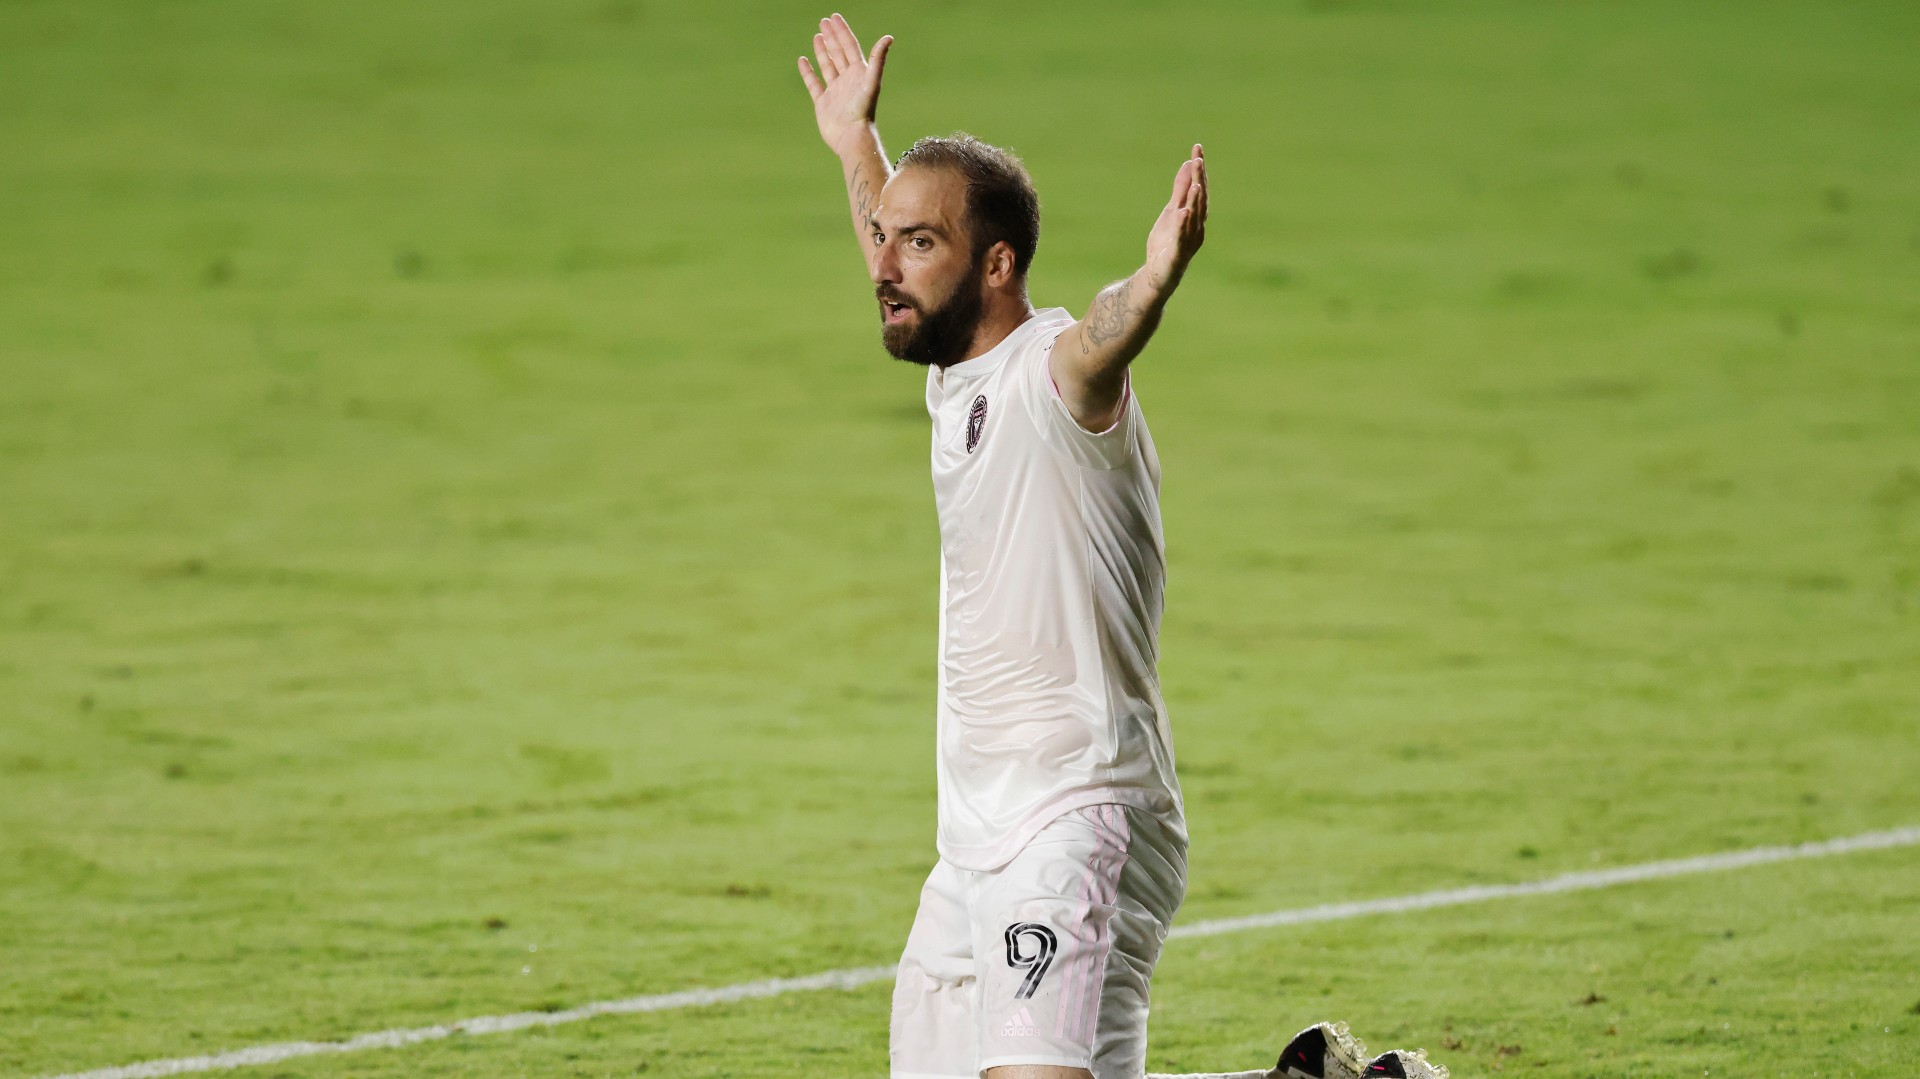 'I thought I could play with a cigarette in my mouth! - Higuain admits to being surprised by standard of MLS